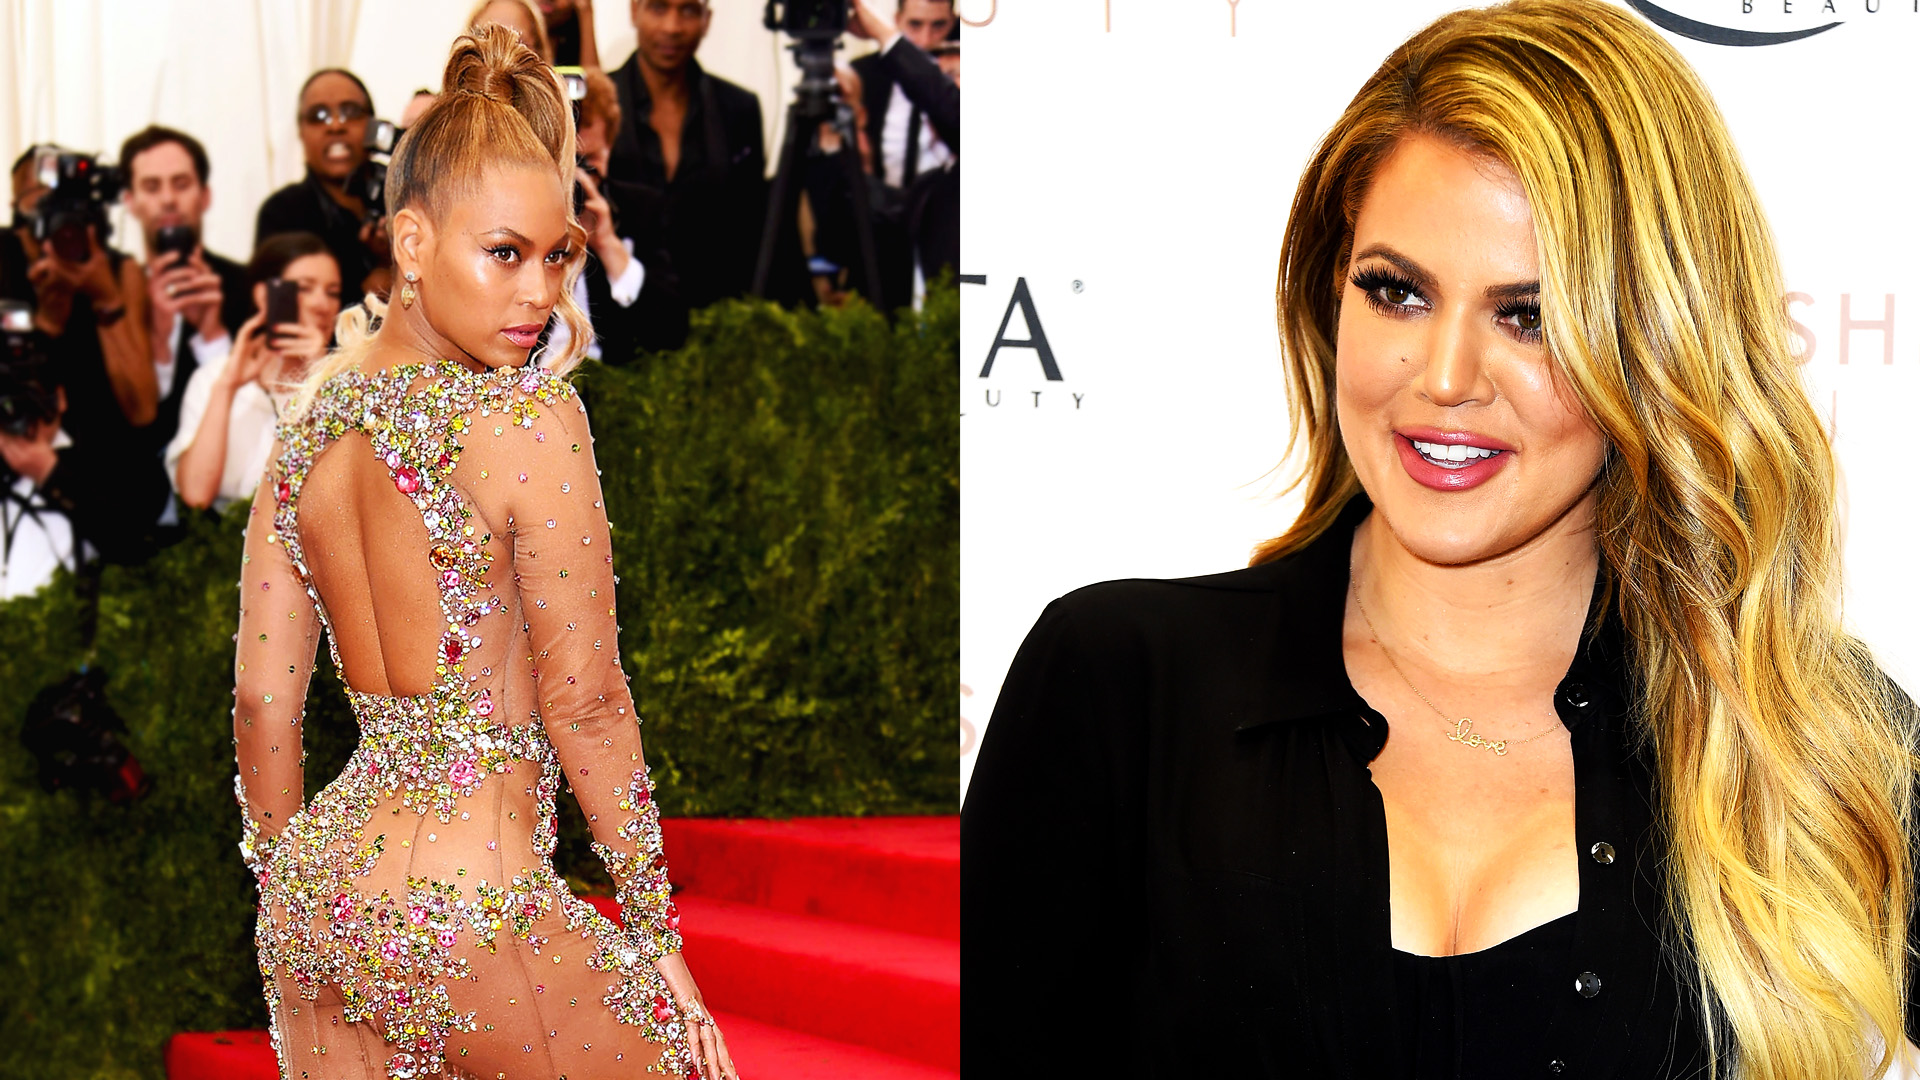 Khloe Kardashian Says Beyonce Is Her Fitspiration